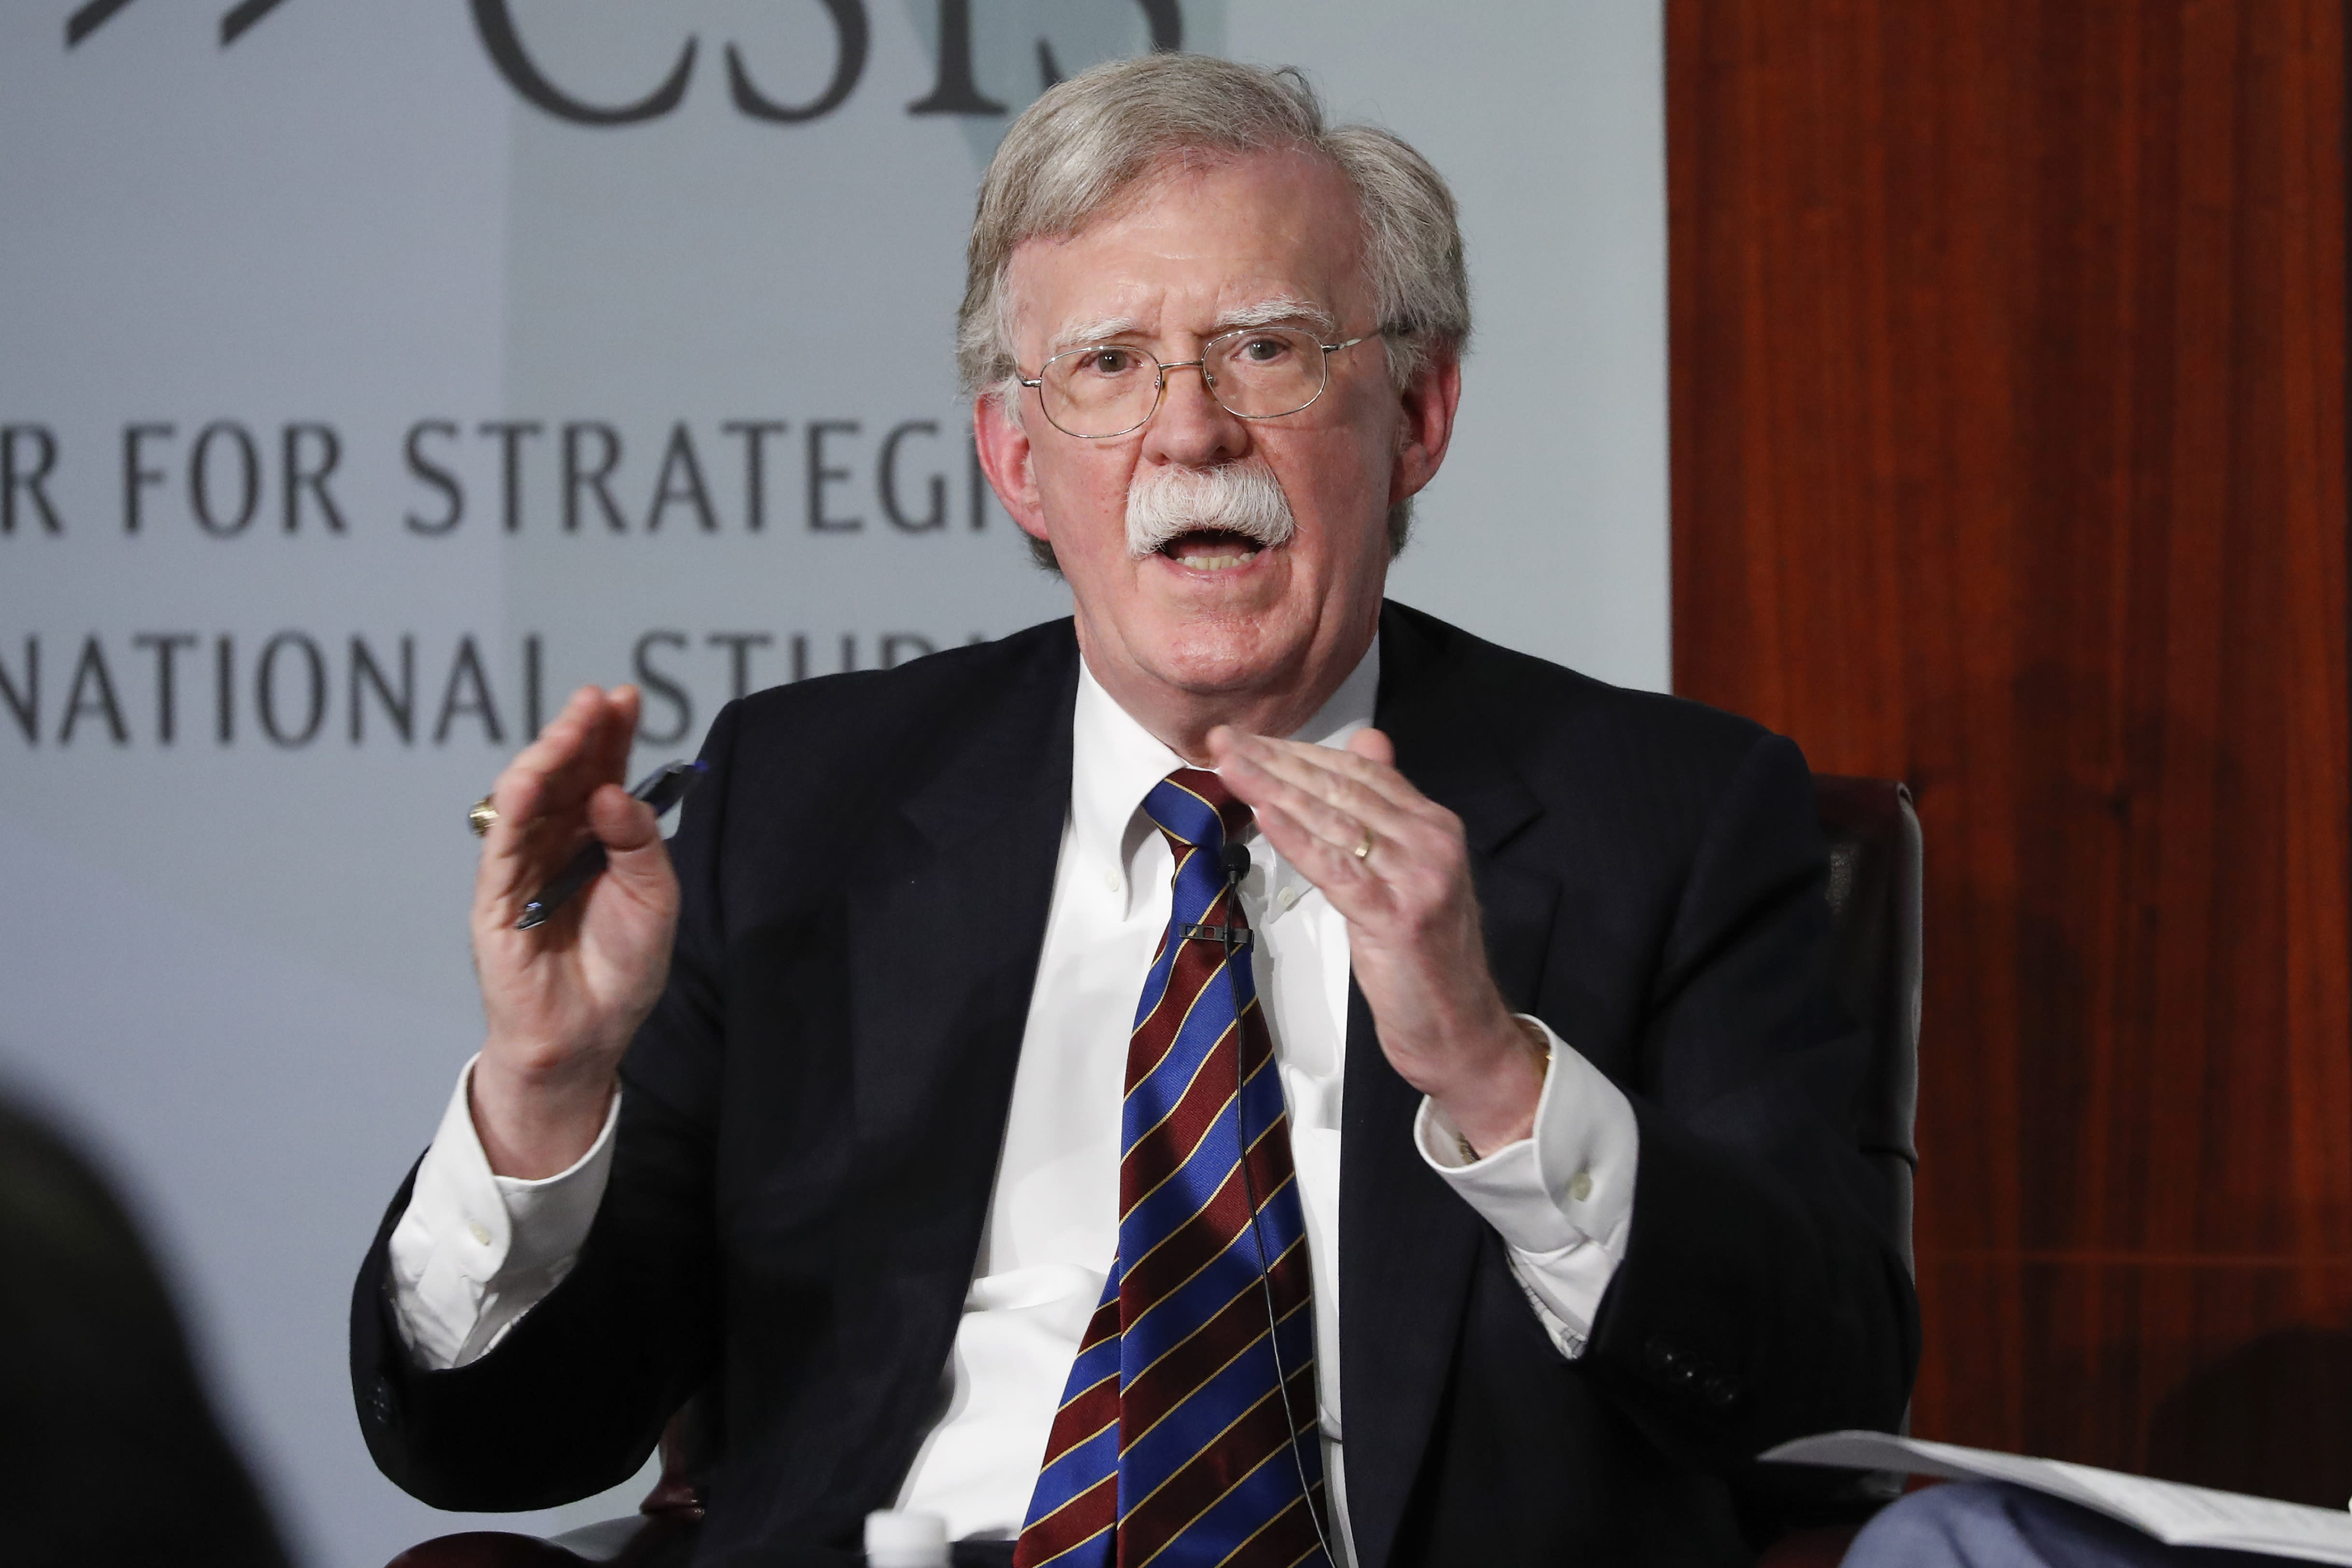 FILE - In this Sept. 30, 2019, file photo, former national security adviser John Bolton gestures while speakings at the Center for Strategic and International Studies in Washington. They are the ghosts of the House impeachment hearings. Vice President Mike Pence. Secretary of State Mike Pompeo. Energy Secretary Rick Perry. Acting White House Chief of Staff Mick Mulvaney. And perhaps most tantalizingly, the mustachioed John Bolton, President Donald Trump's former national security adviser. (AP Photo/Pablo Martinez Monsivais, File)